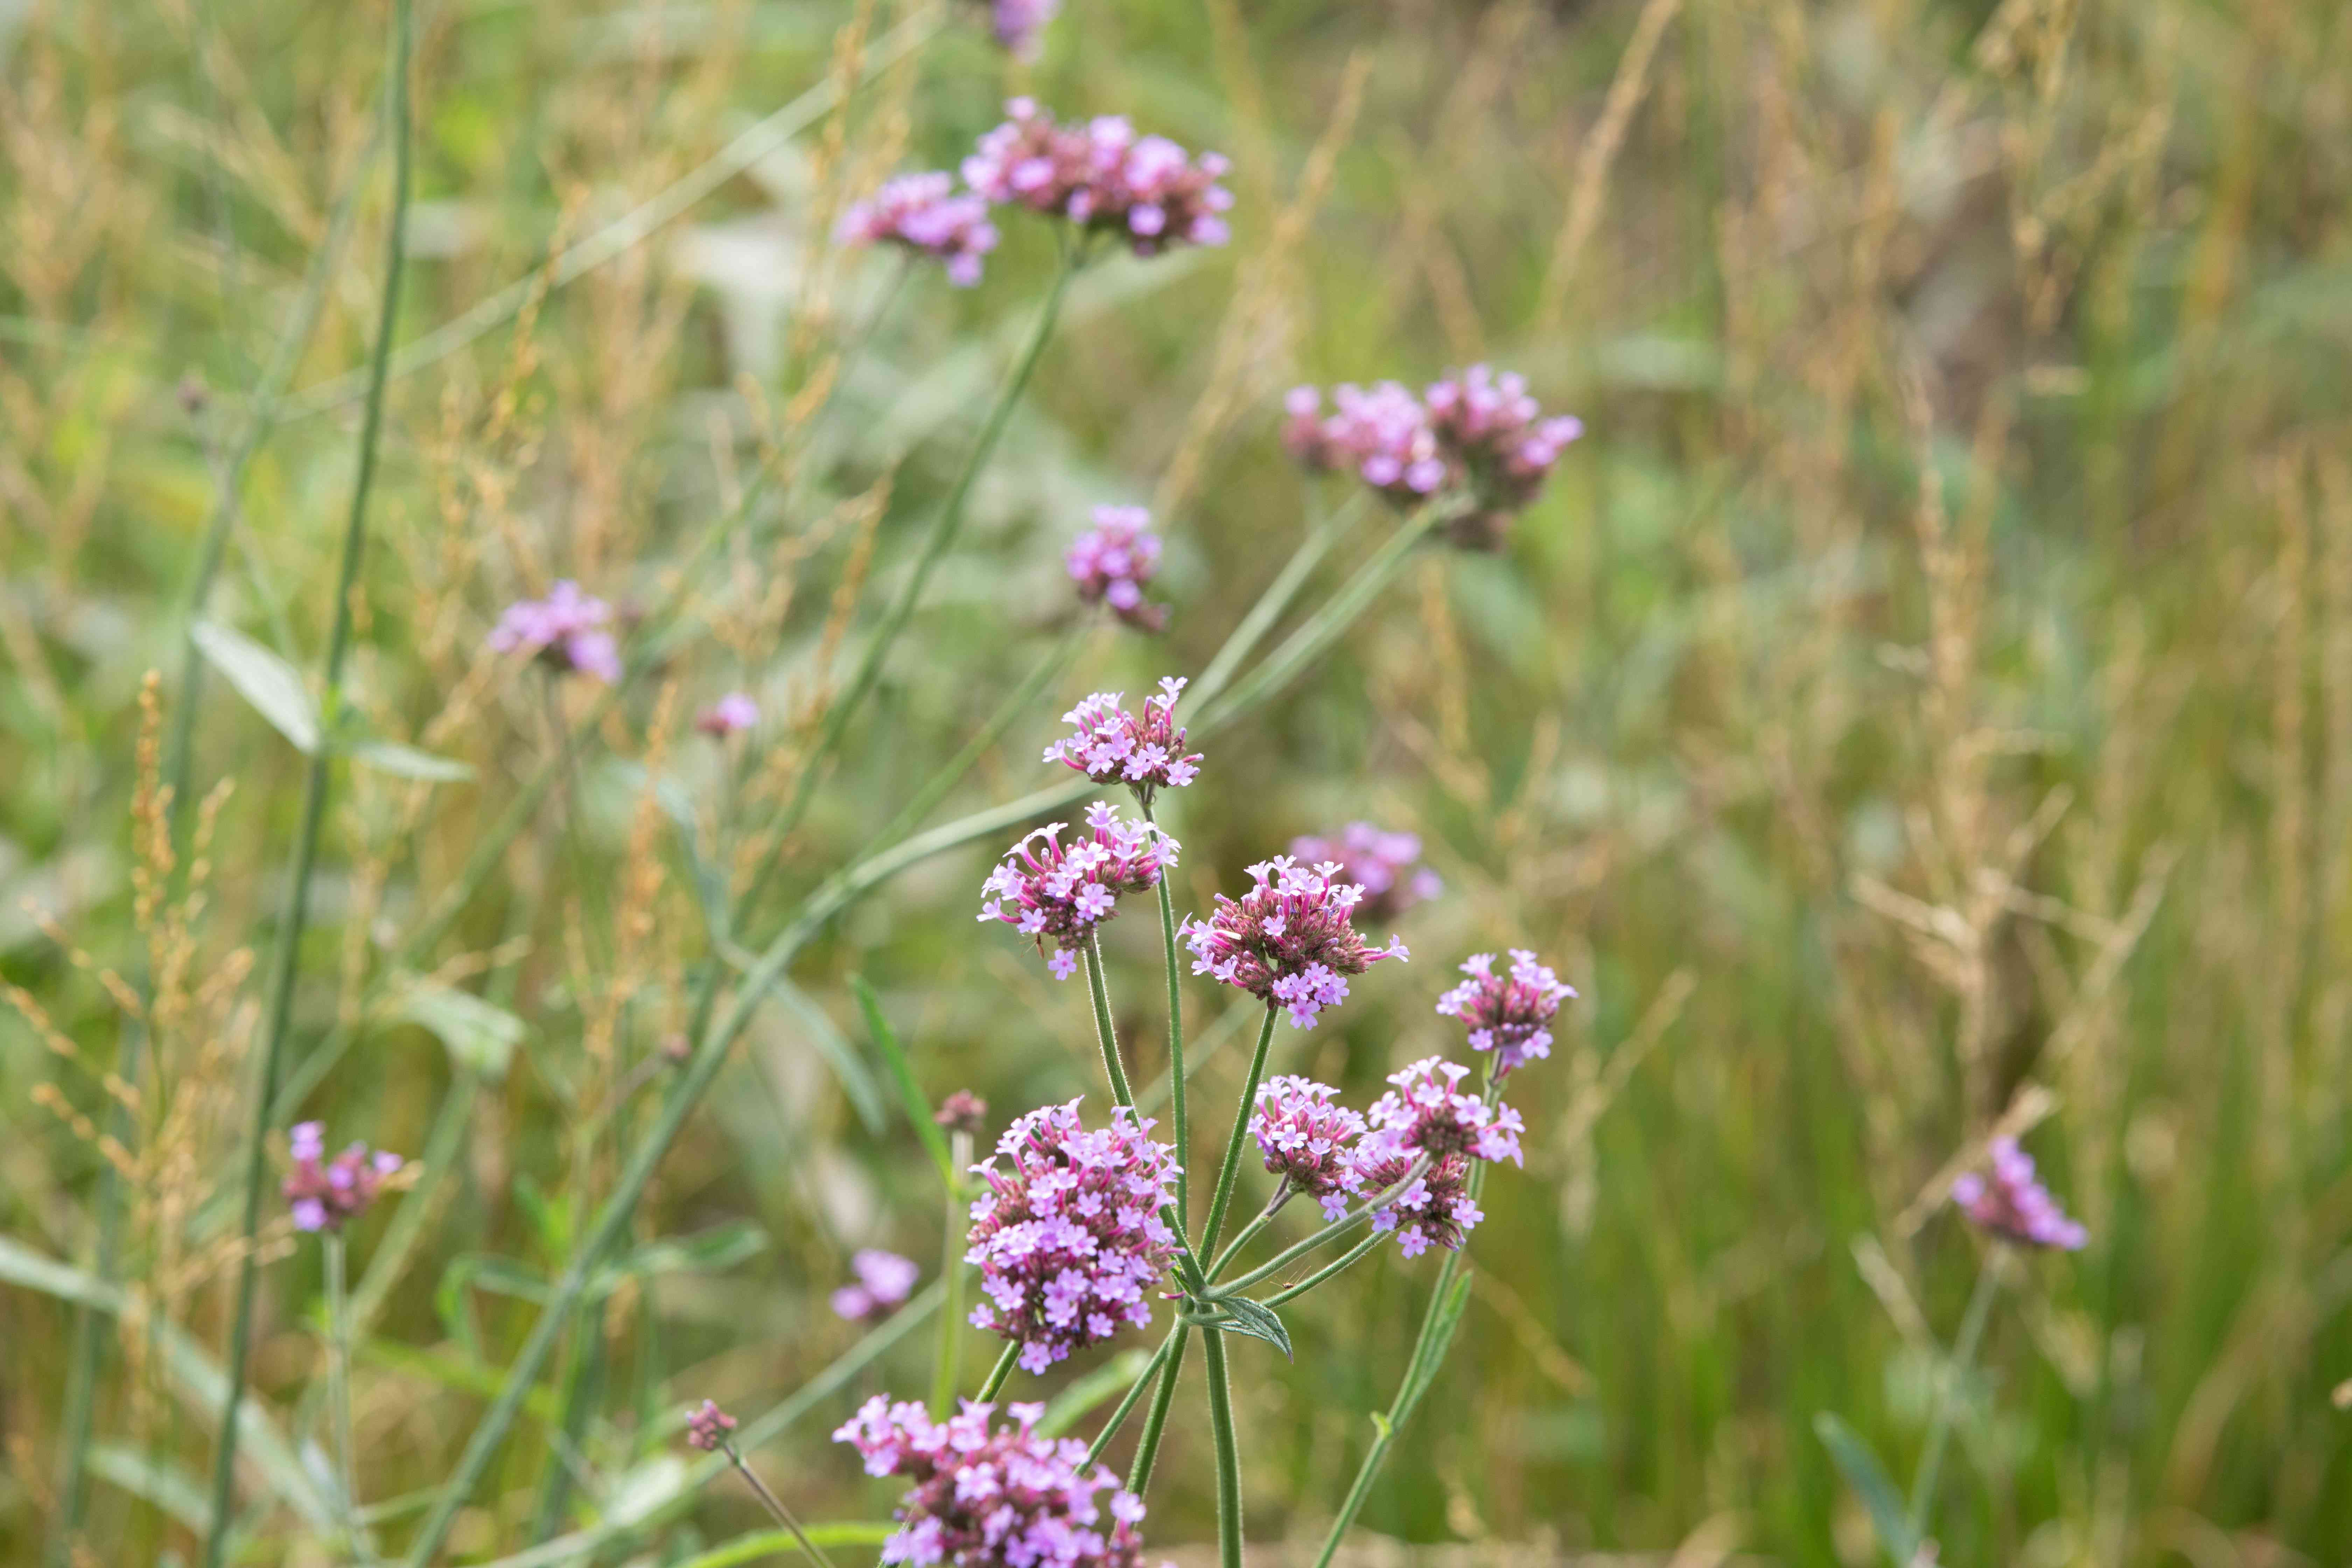 Verbena plant with small pink flower clusters on thin stems closeup